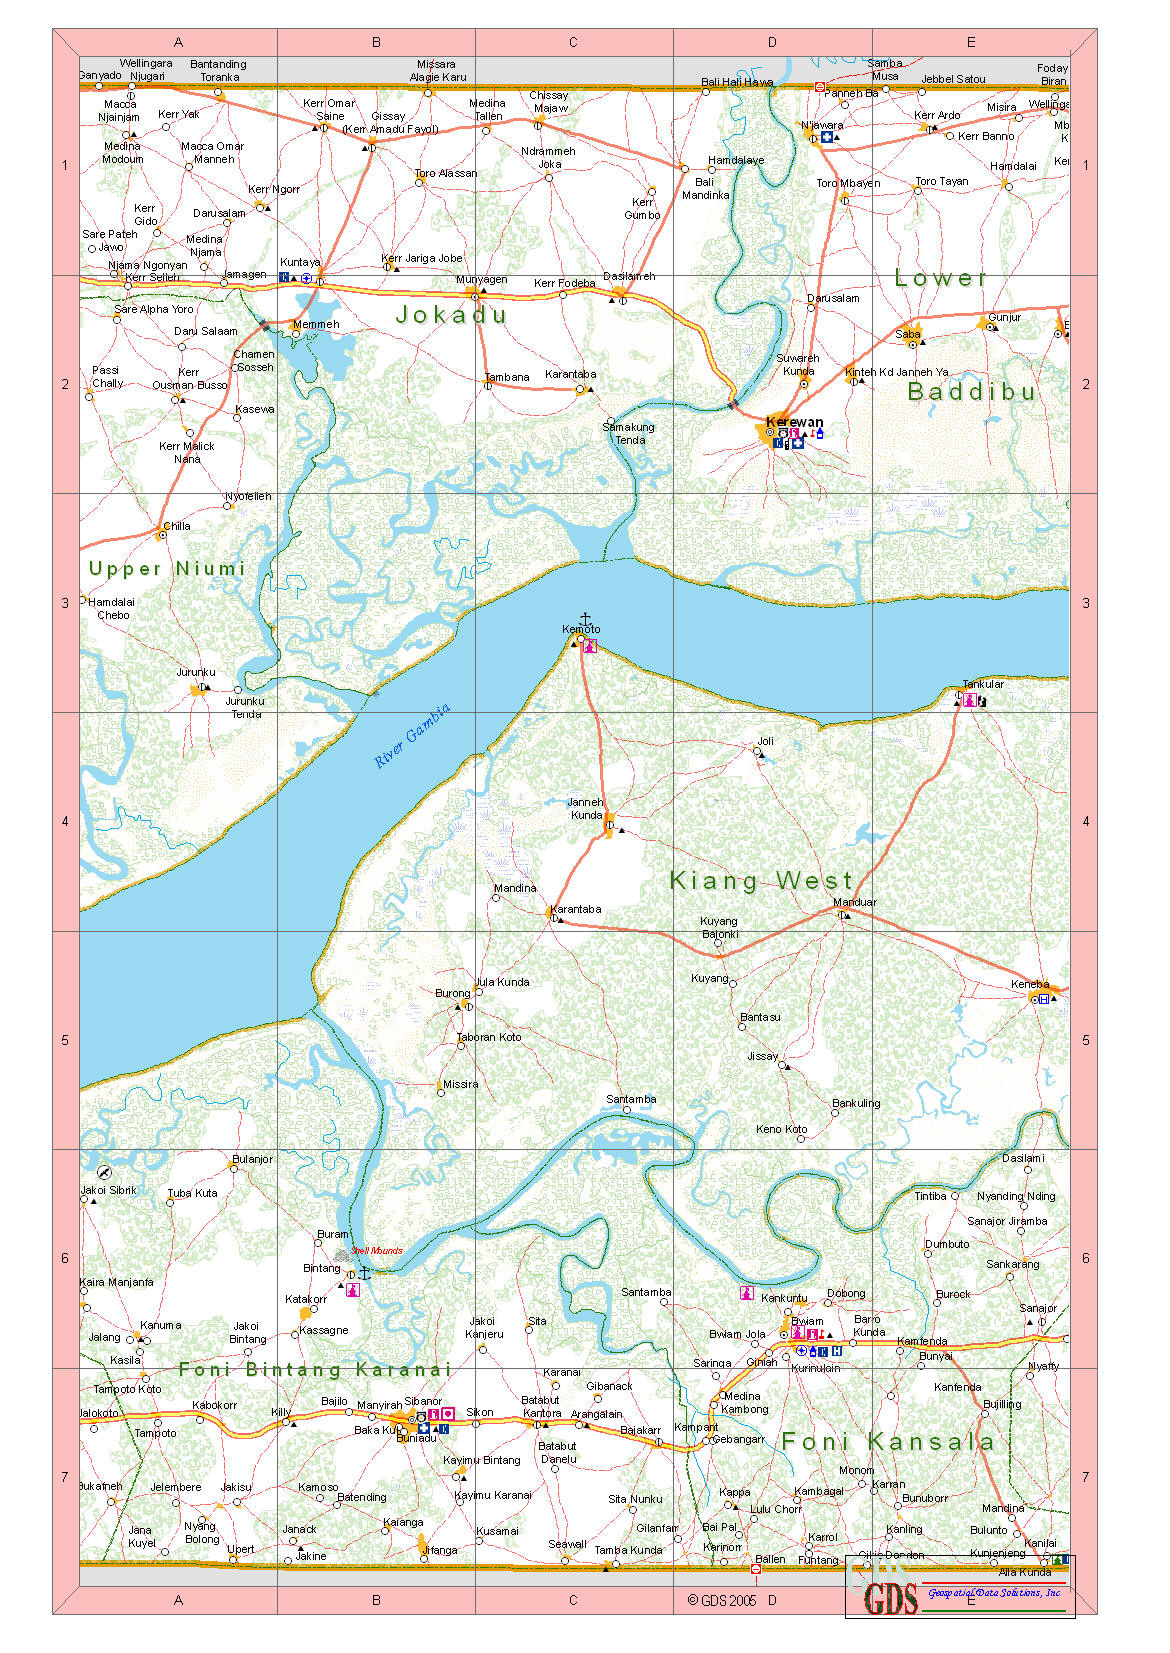 Large Detailed Road And Travel Map Of Gambia With All Cities